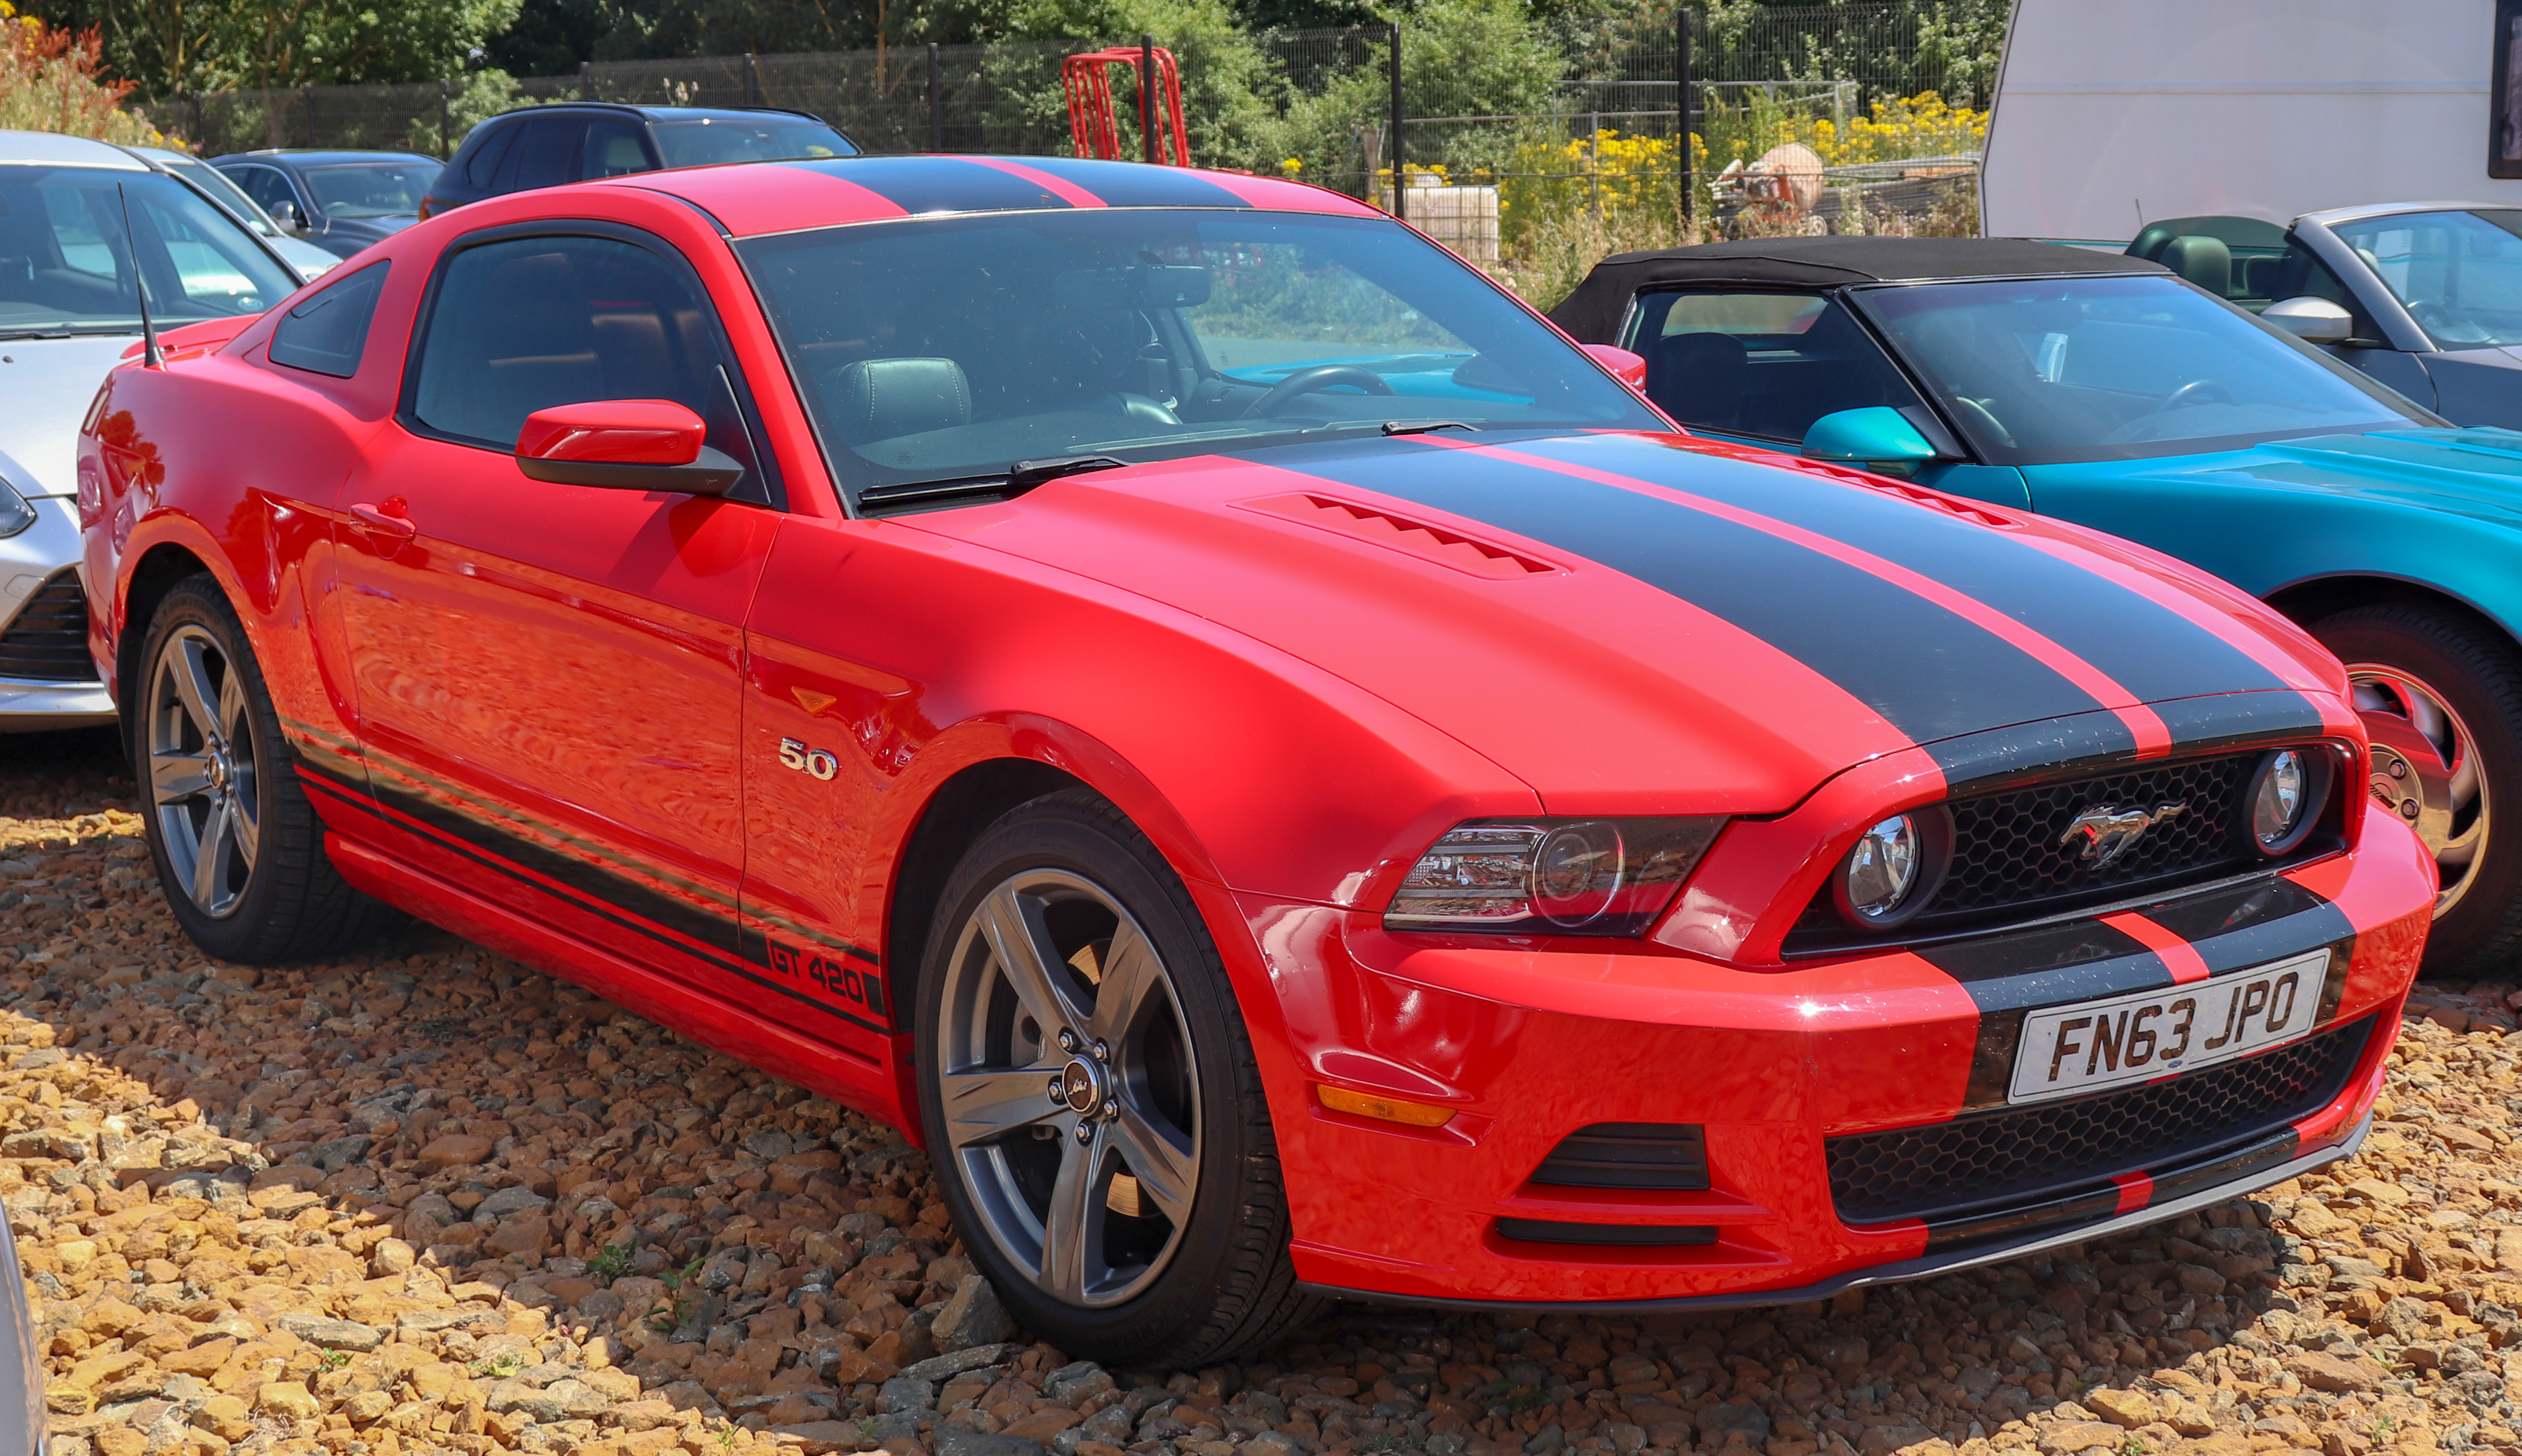 File:2014 Ford Mustang GT Automatic 5.0 Front.jpg - Wikimedia Commons